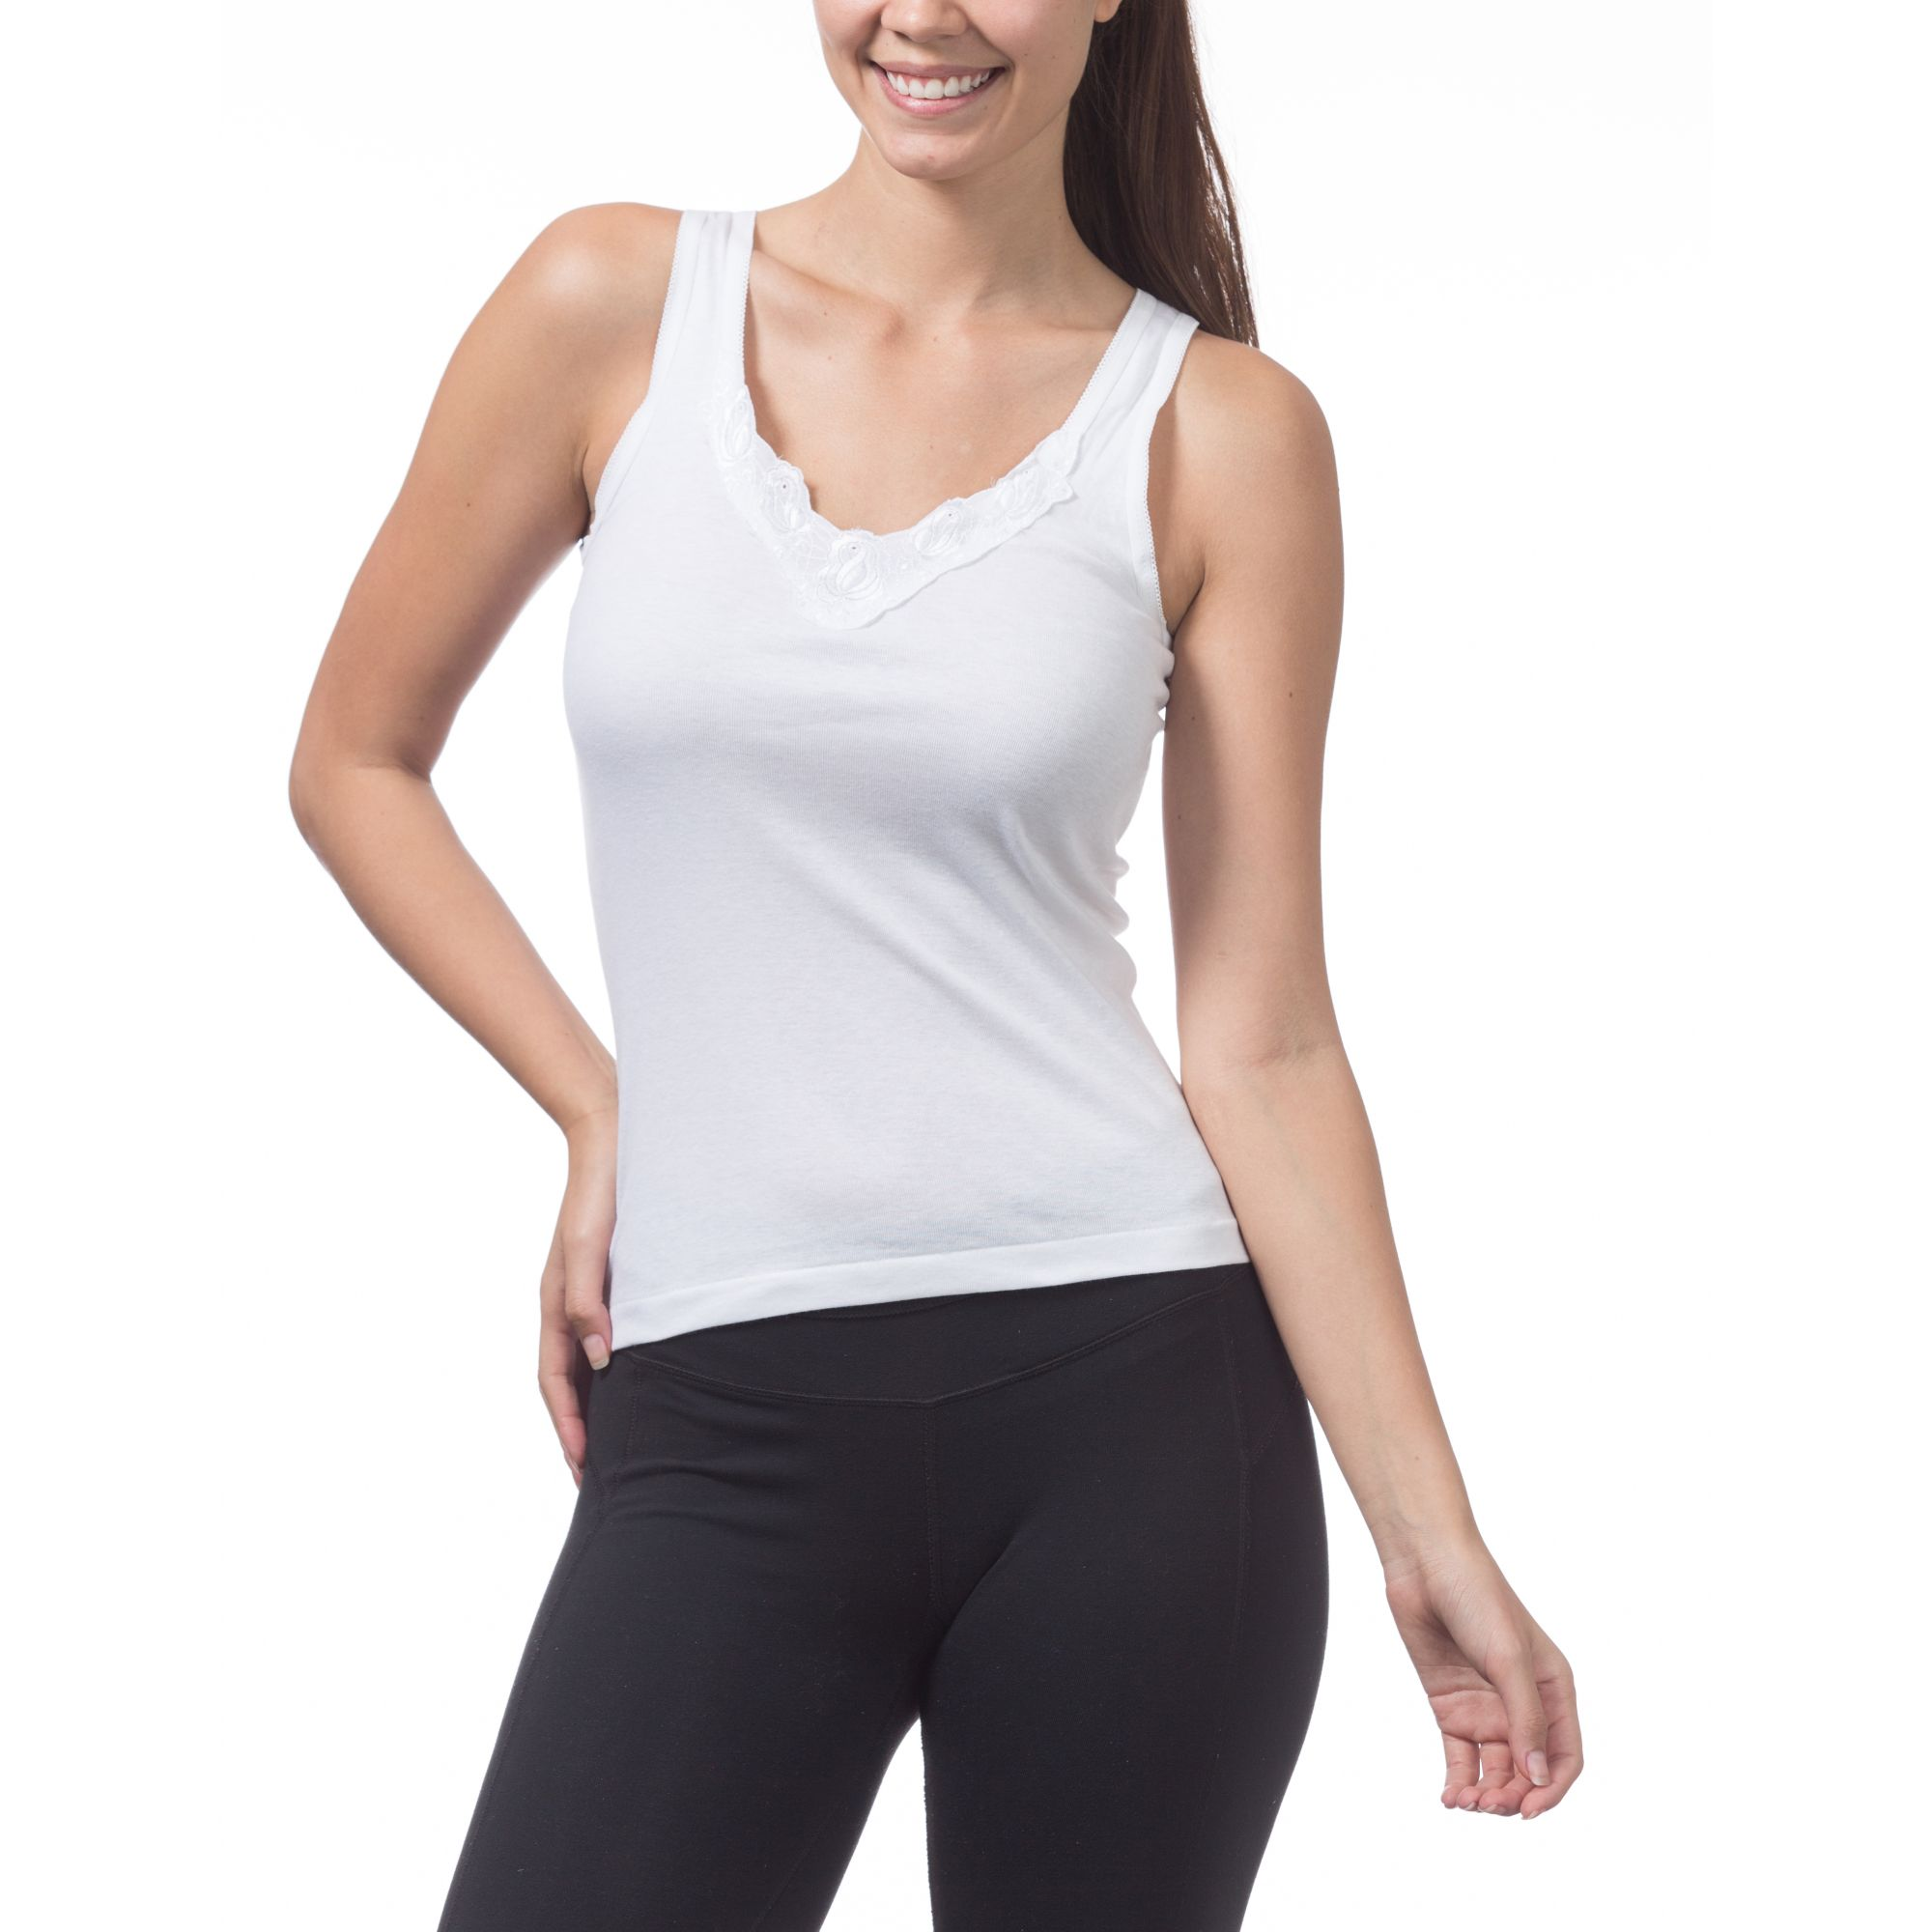 Pro Club Women's Laced Tank Top, Small, Snow White